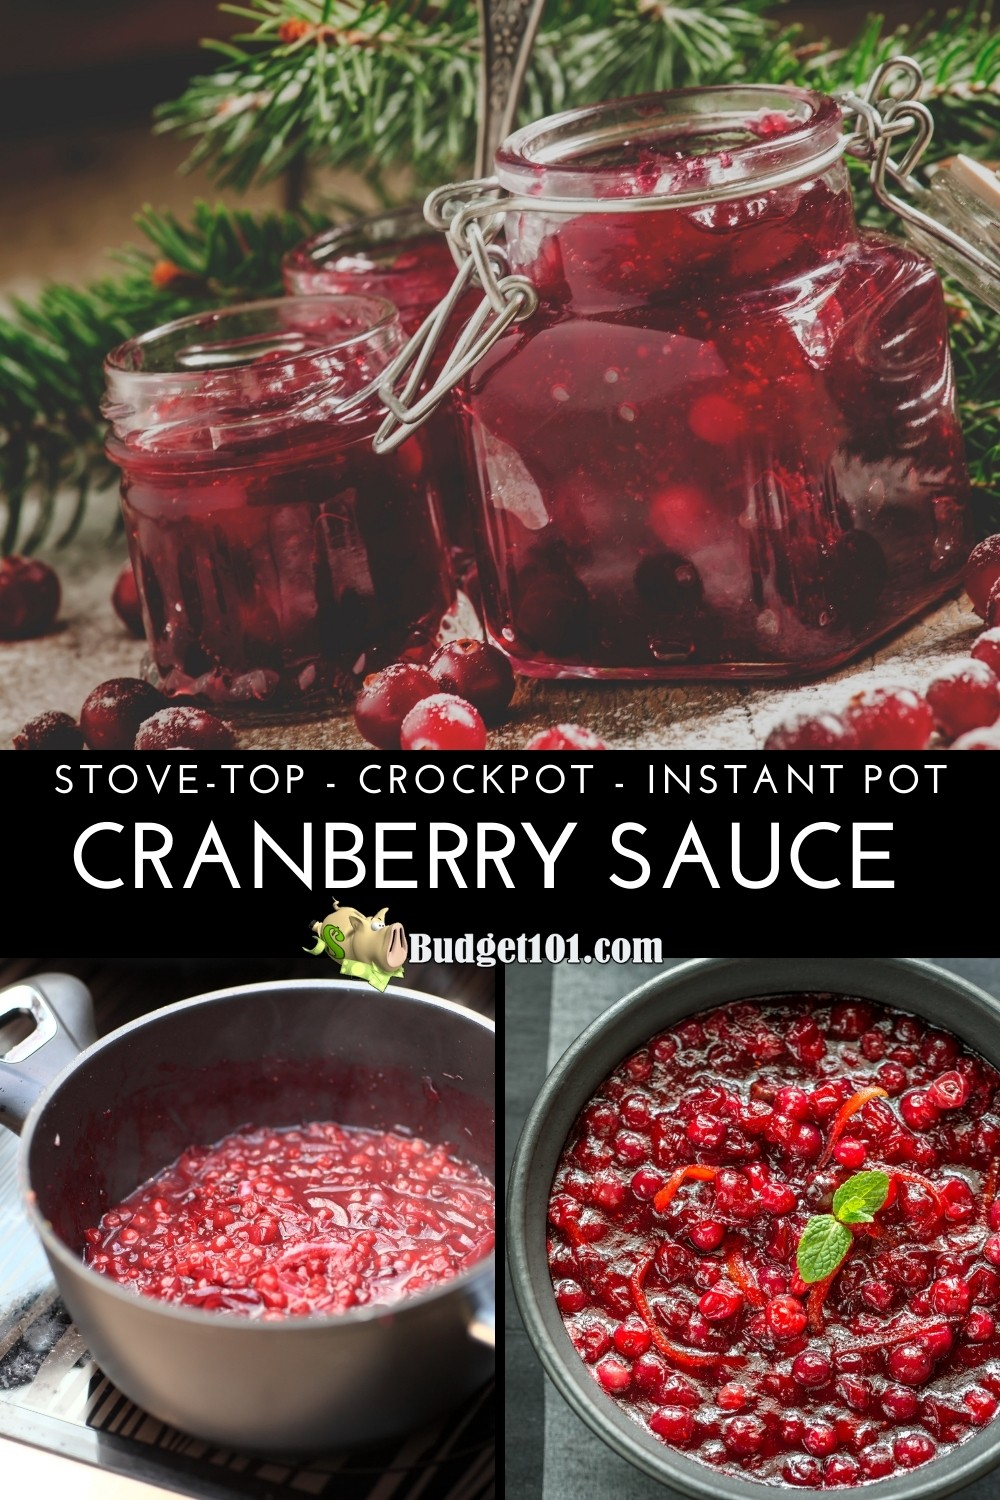 How to make whole berry or jellied cranberry sauce on the stove, crockpot, or instant pot #CranberrySauce #Thanksgiving #myo #makeyourown #homemade #fromscratch #Budget101